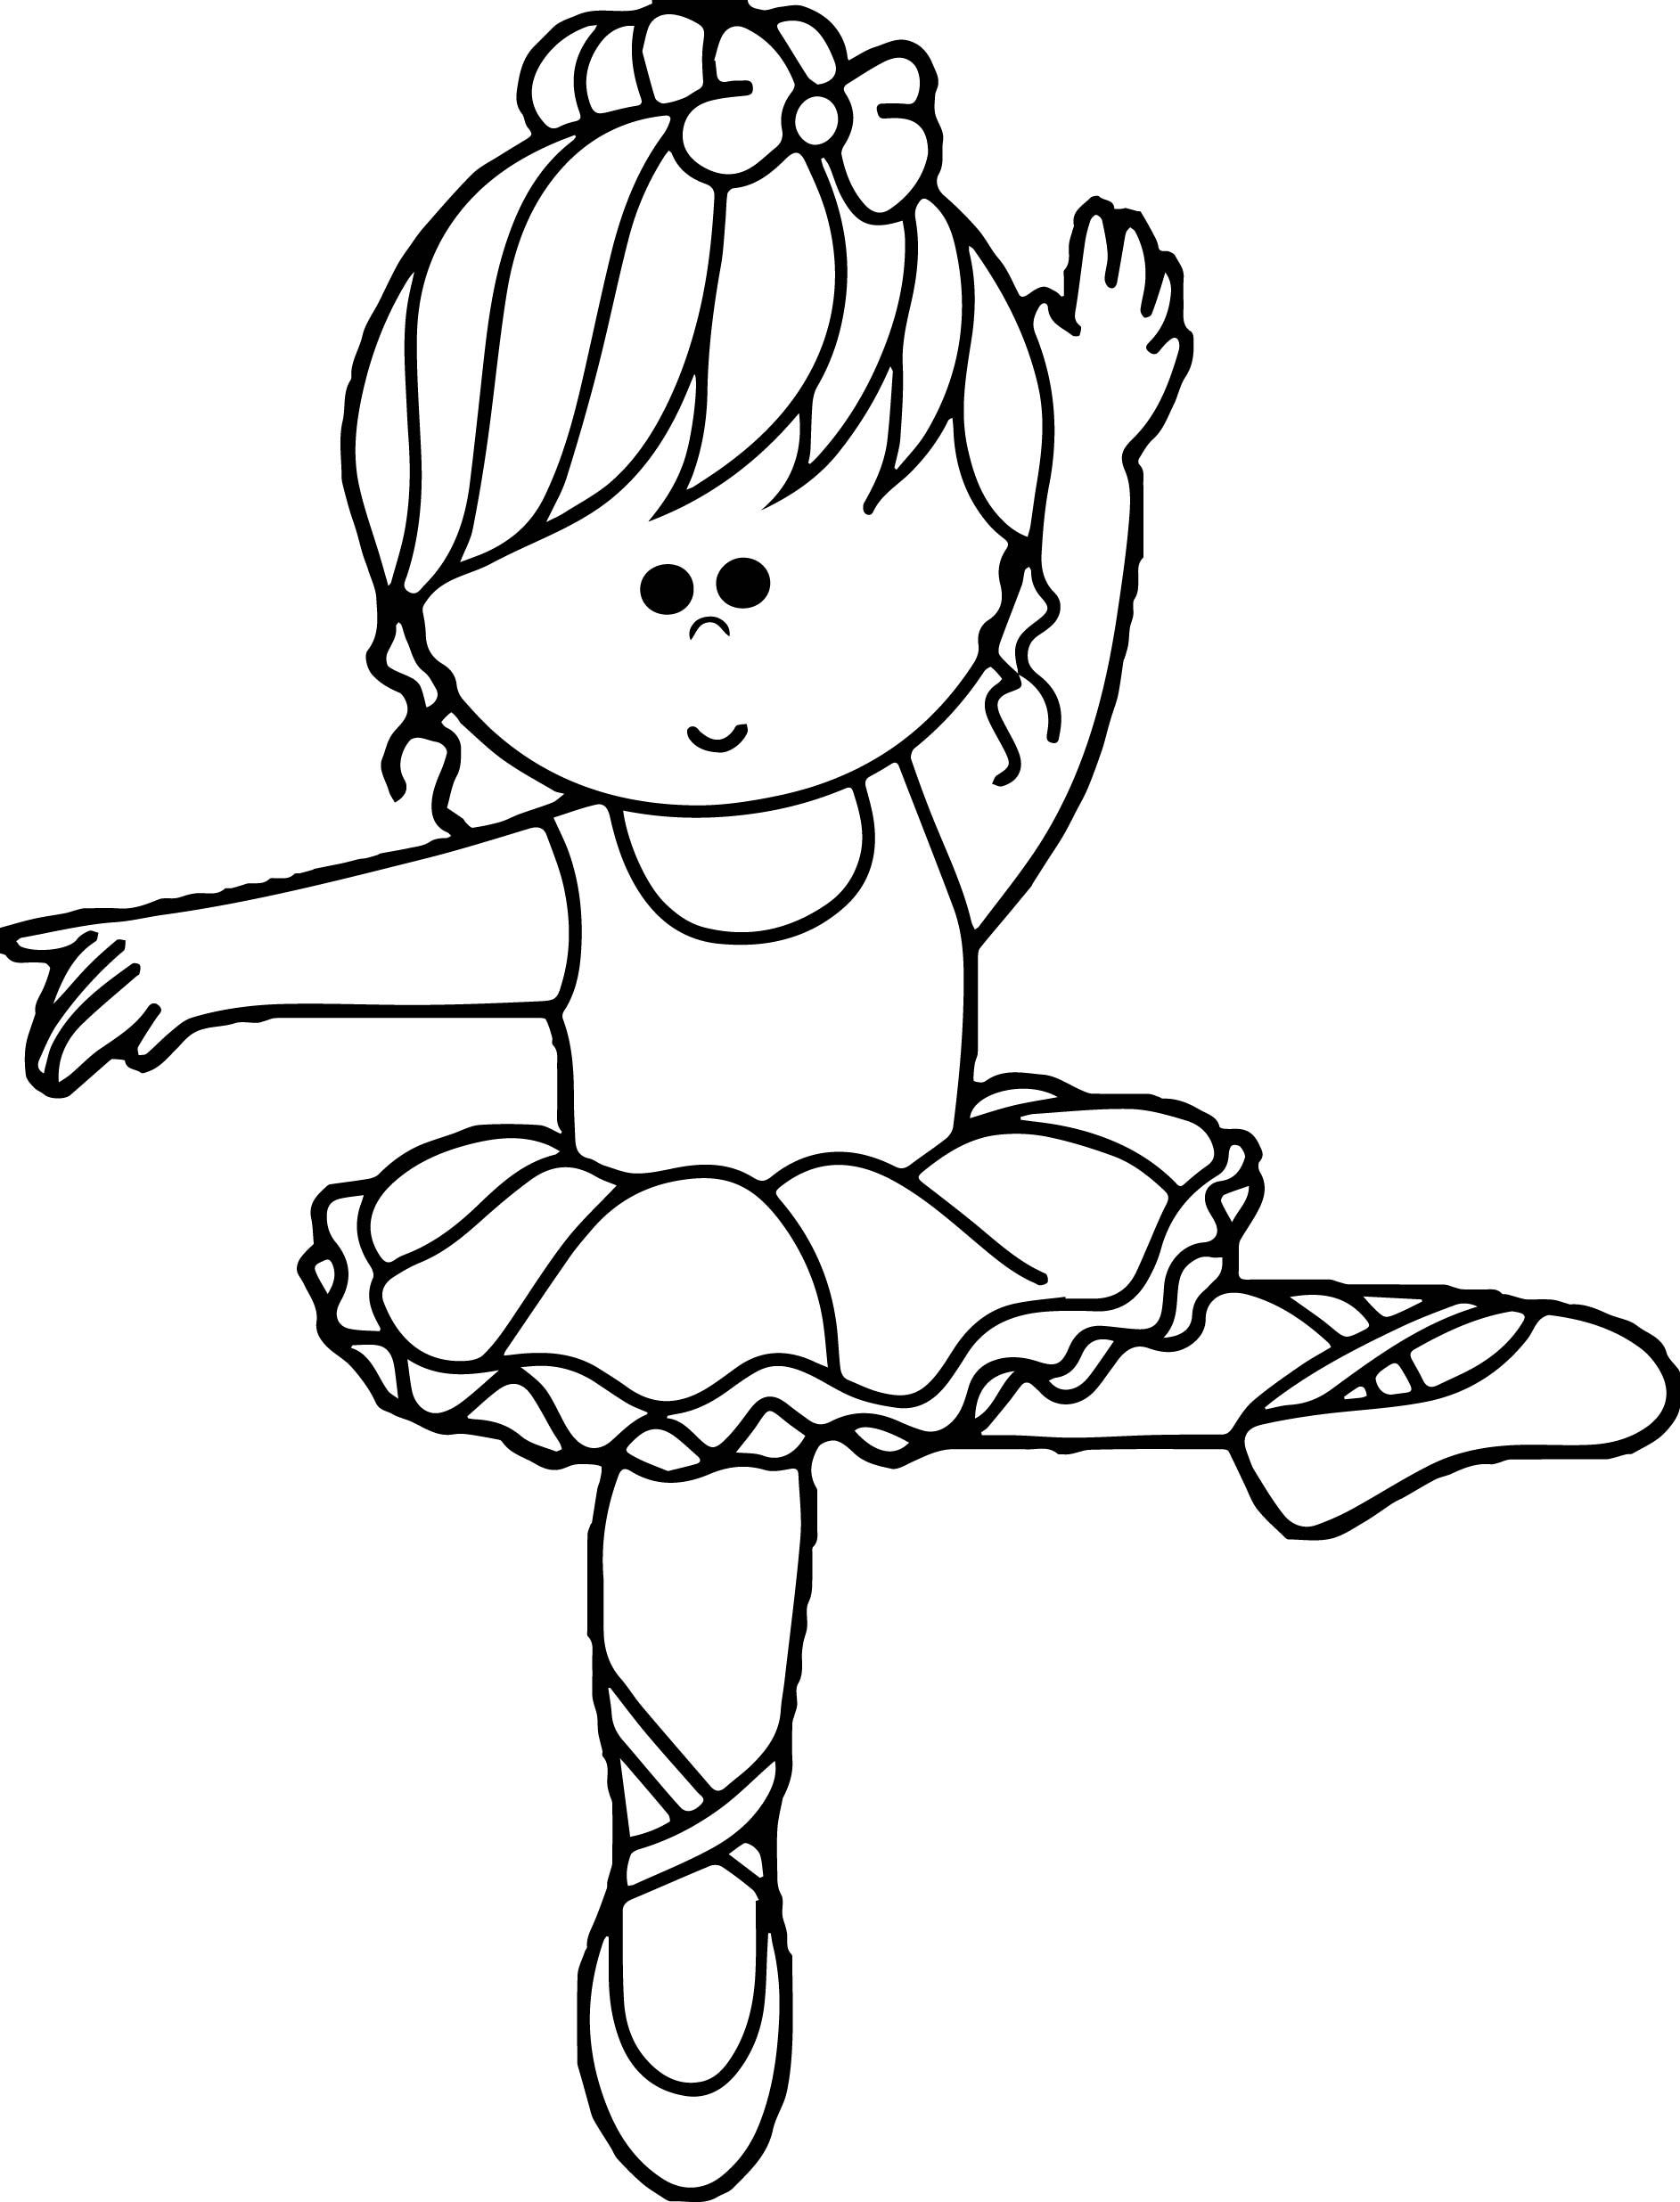 ballerina color fairy ballerina worksheet educationcom ballerina color